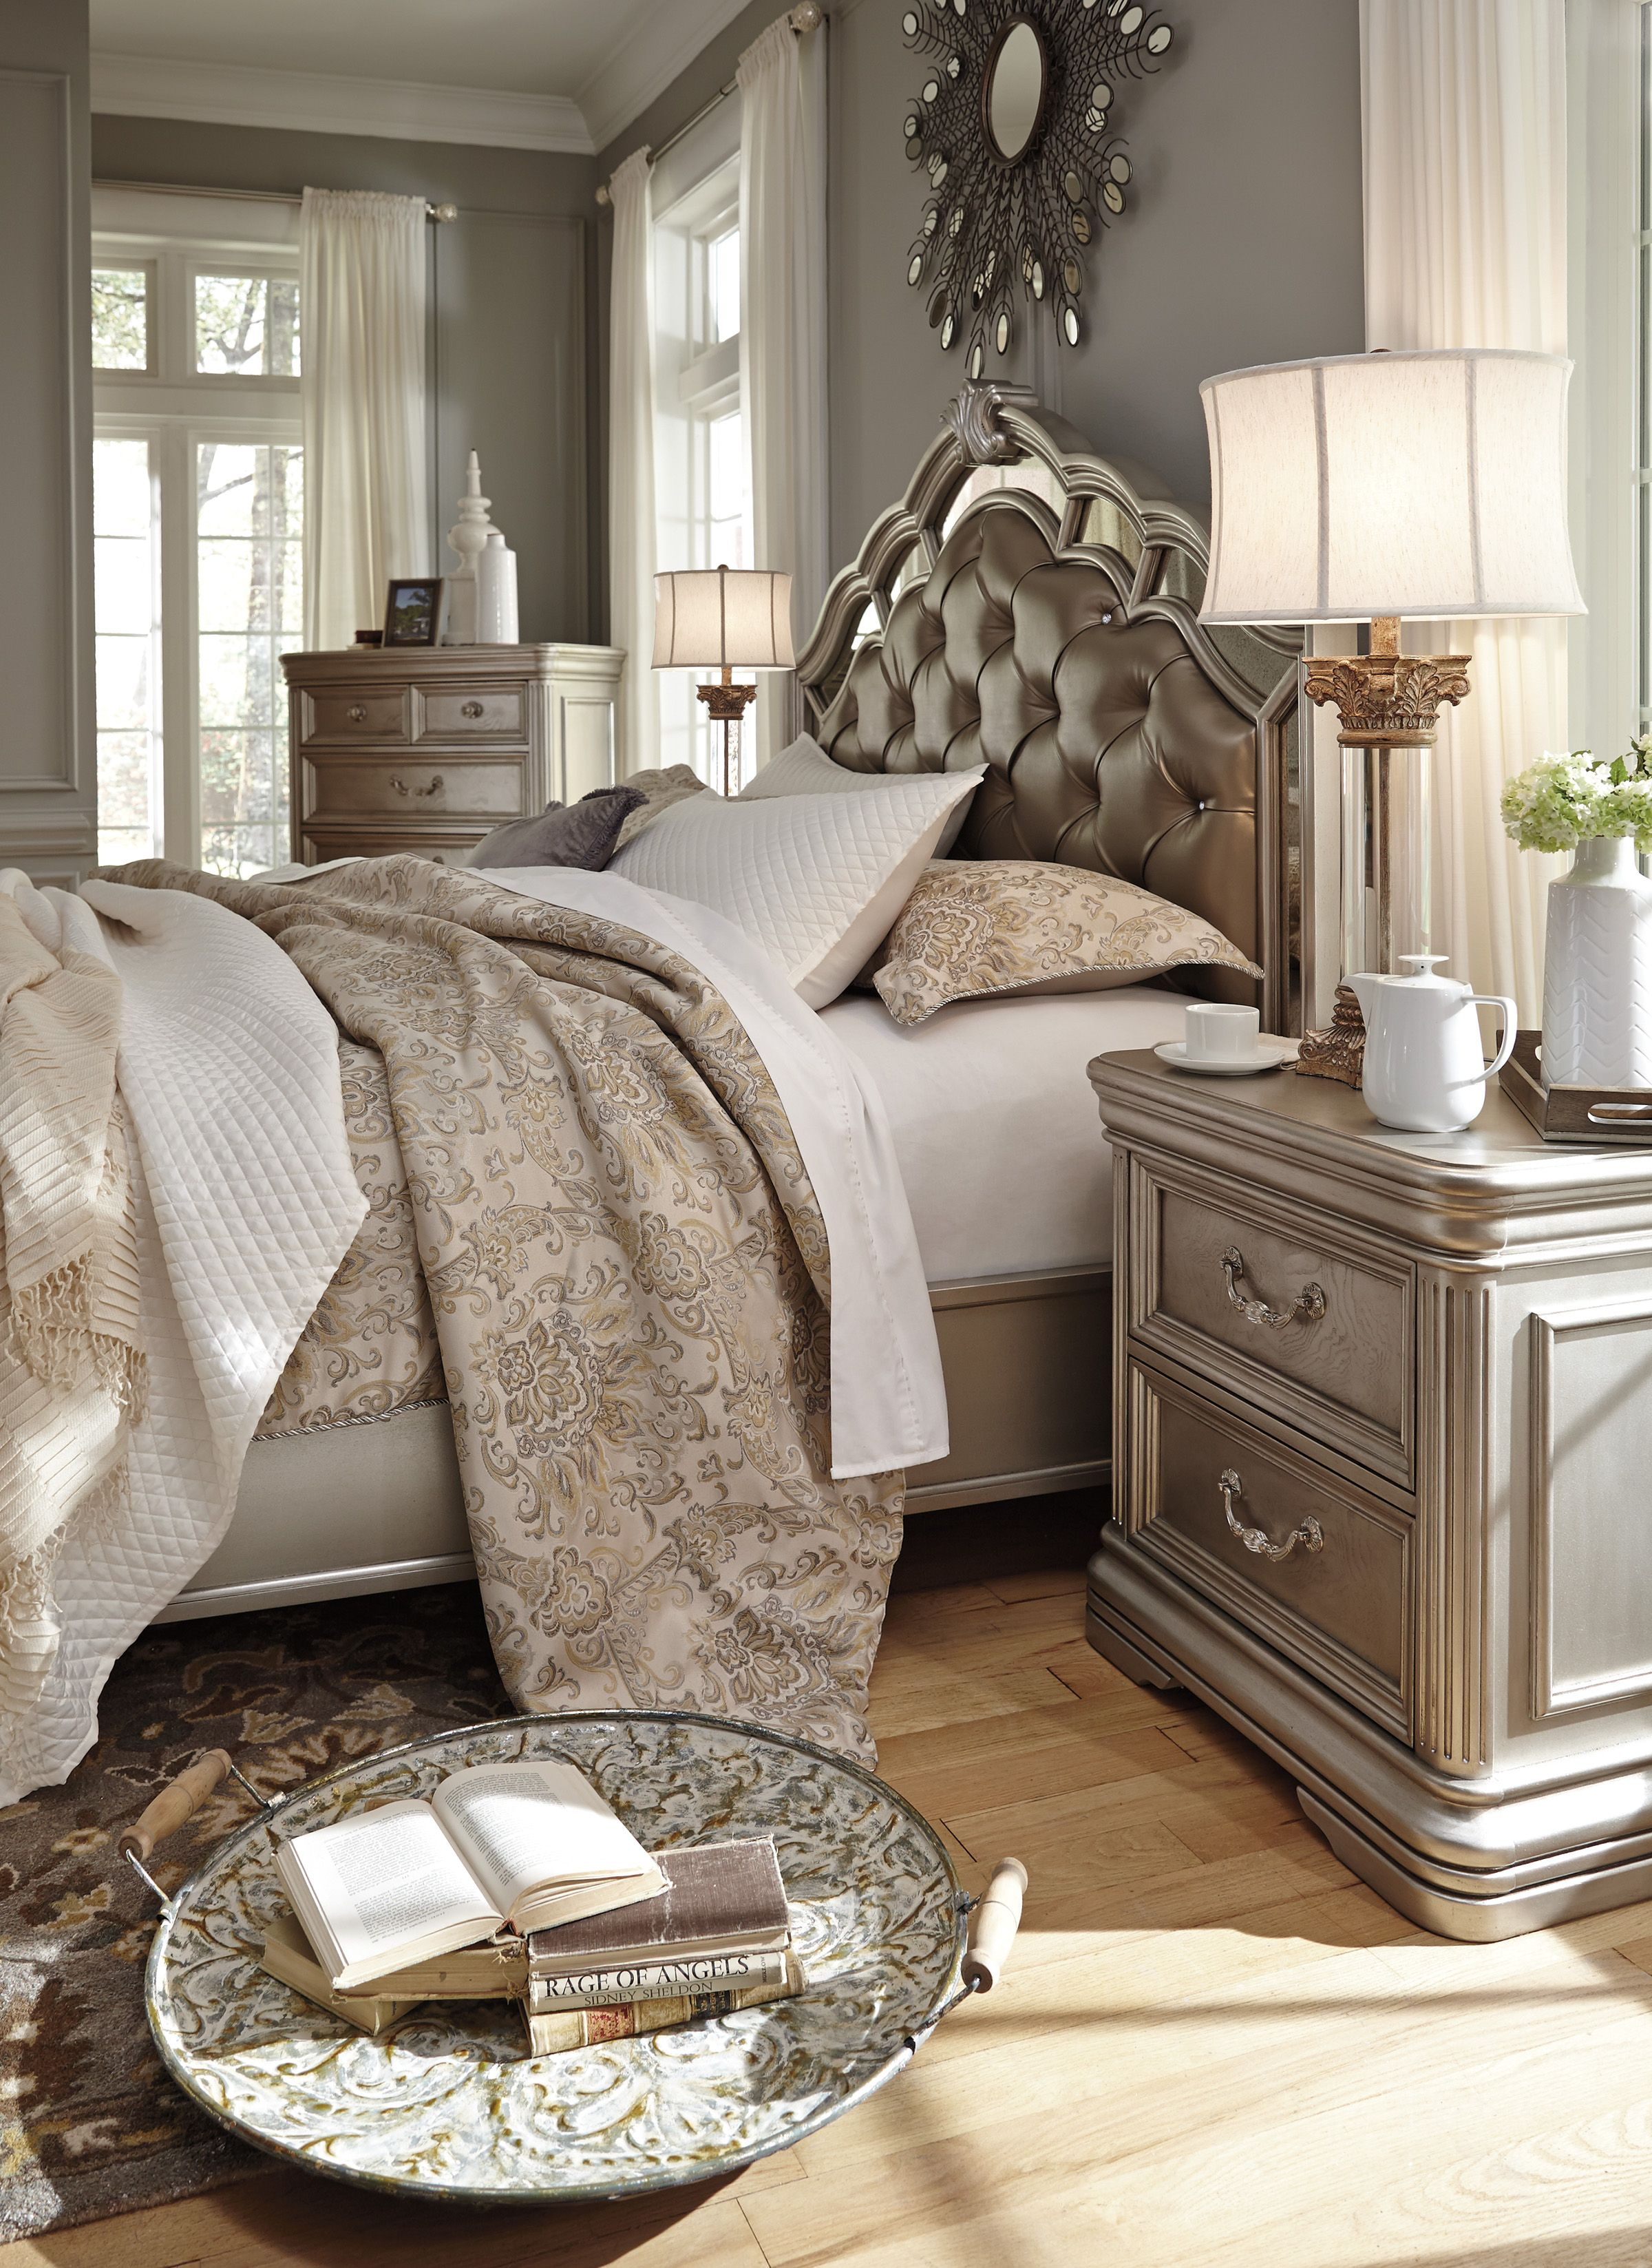 Once Of The Birlanny Bedroom Set